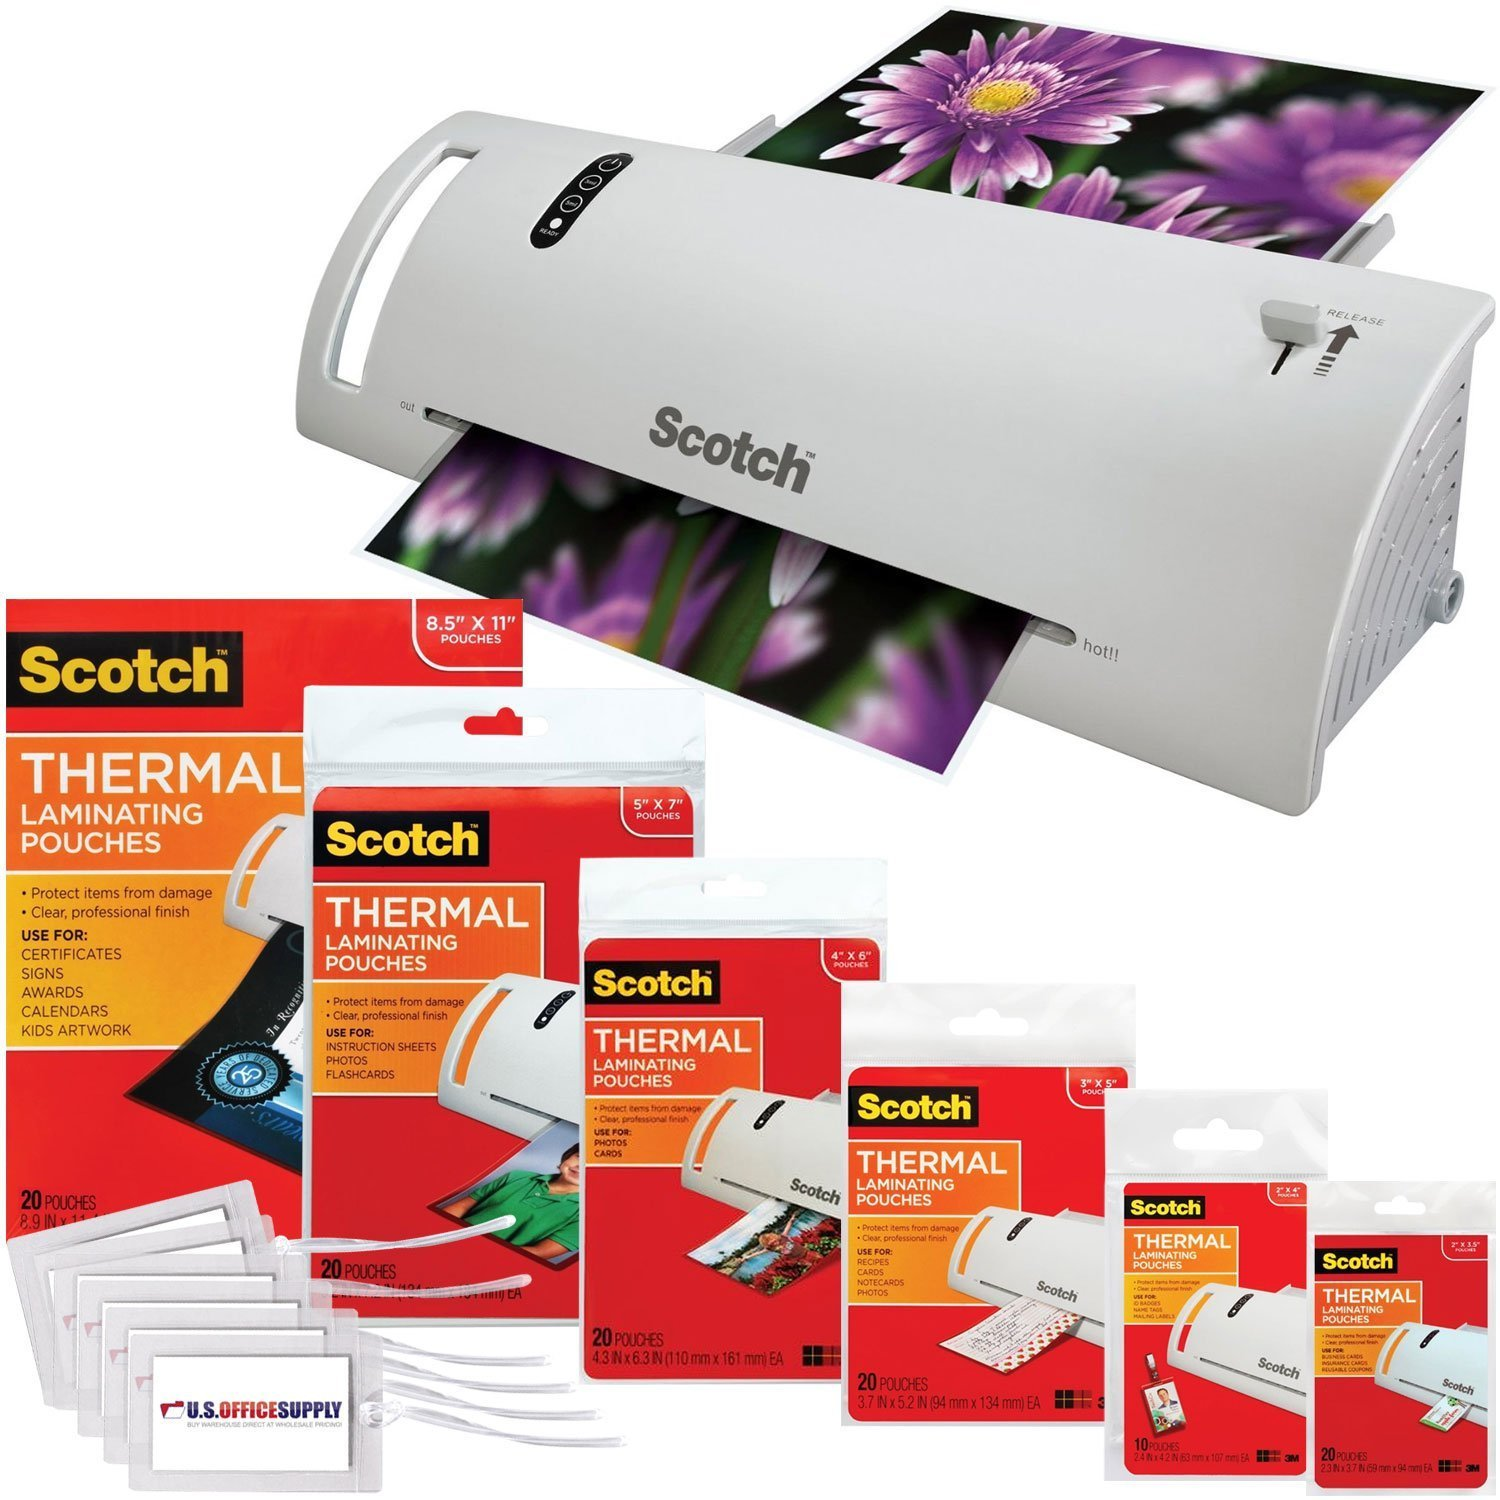 Scotch Thermal Laminator 14.75 x 4.75 x 3.75 Inches (TL902A) Combo Pack with 110 Assorted Pouch Sizes and Scotch Brand Luggage Tags